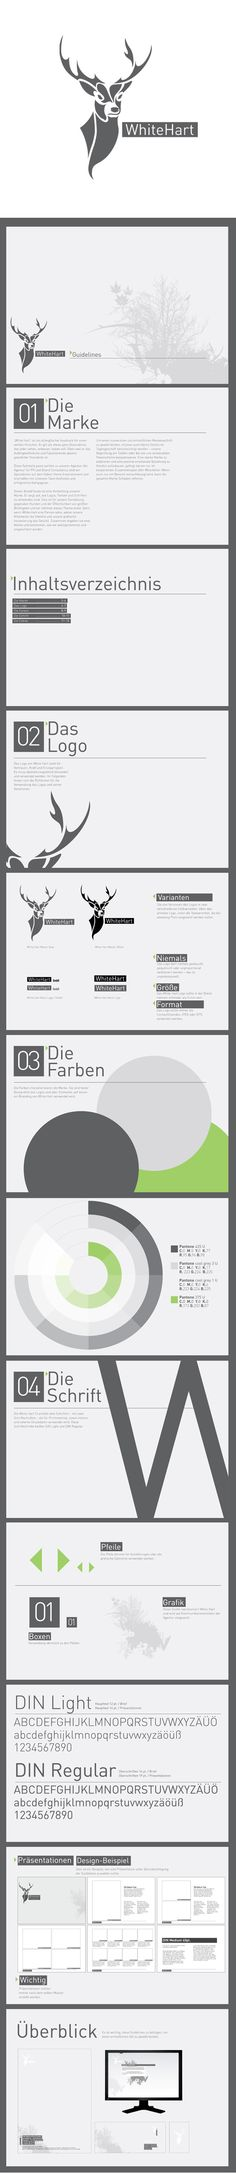 Identity use guidelines | Designer: Popular Group ~ #Logo #Identity #Inspiration